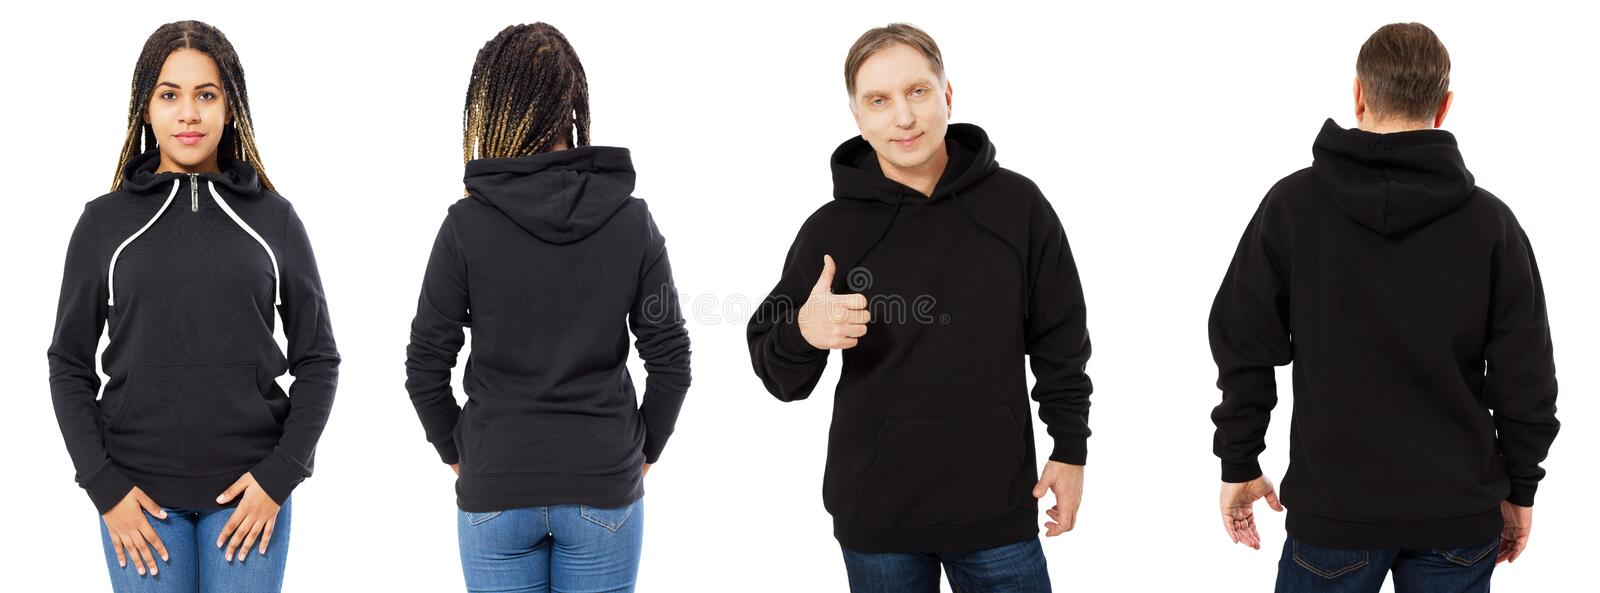 Afro american girl in black hoodie front and back view, man in black sweatshirt set collage isolated on white background, hood stock photo